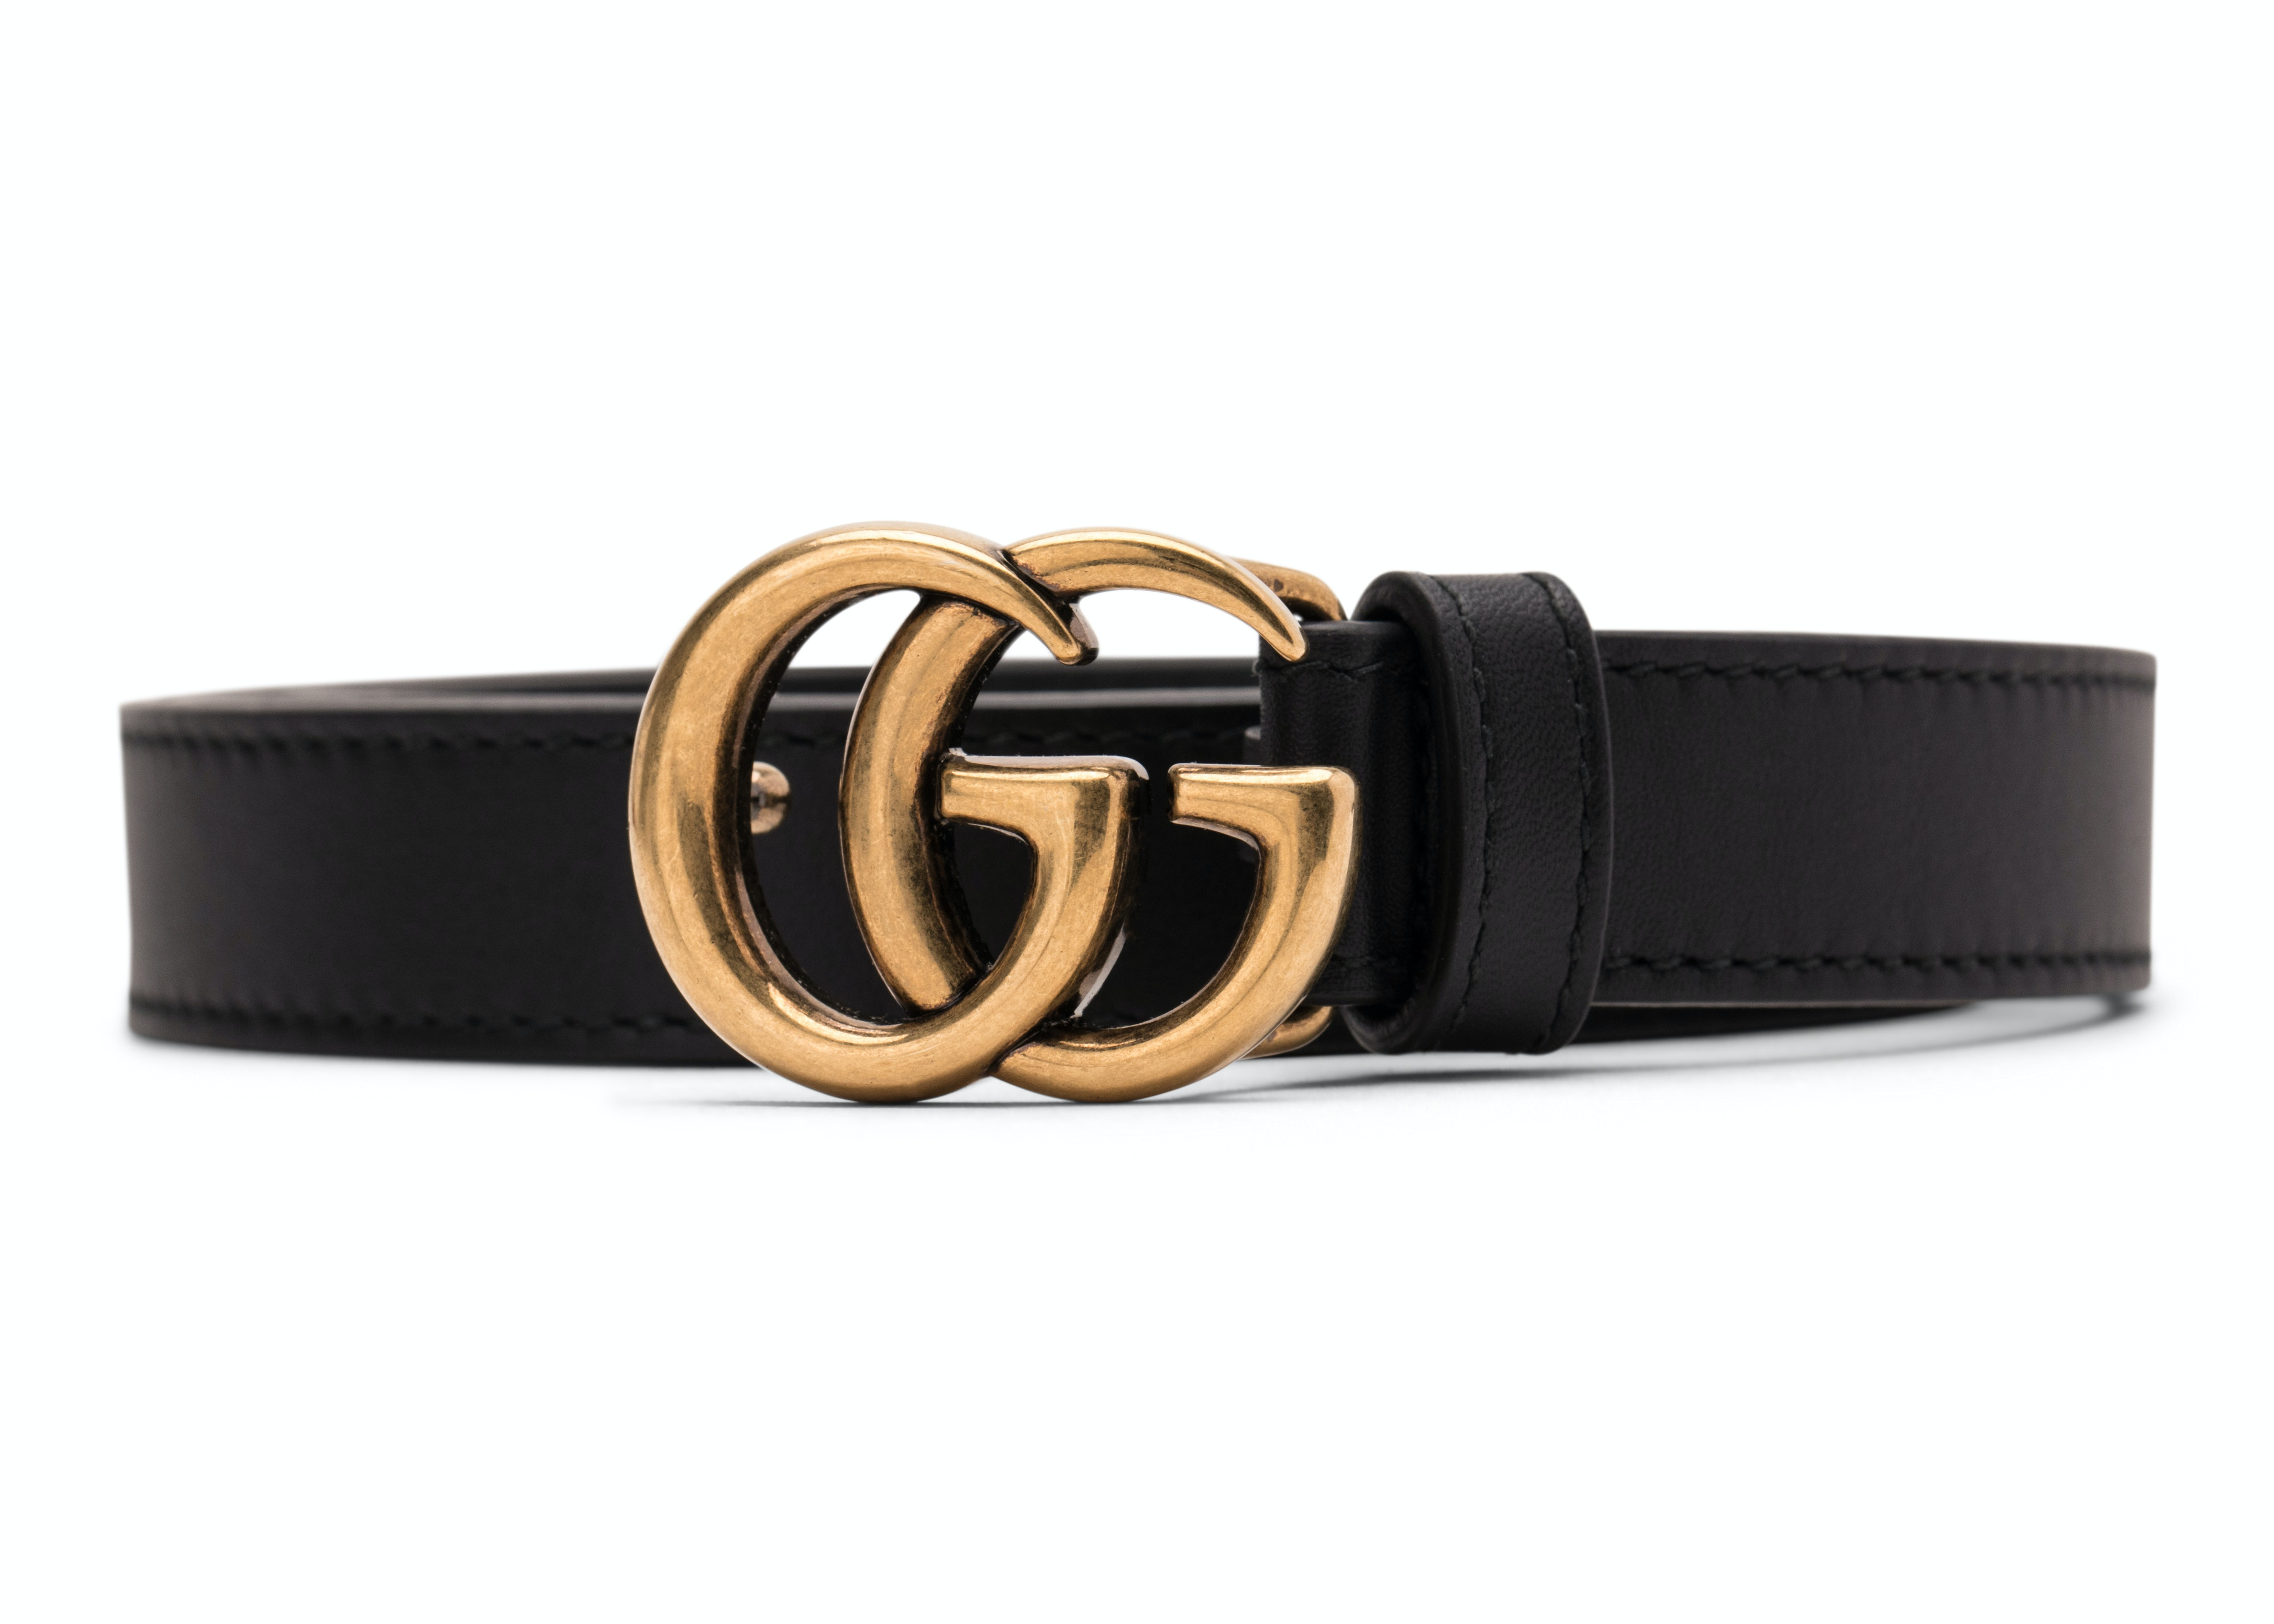 Gucci Double G Gold Buckle Leather Belt 0.8 Width Black